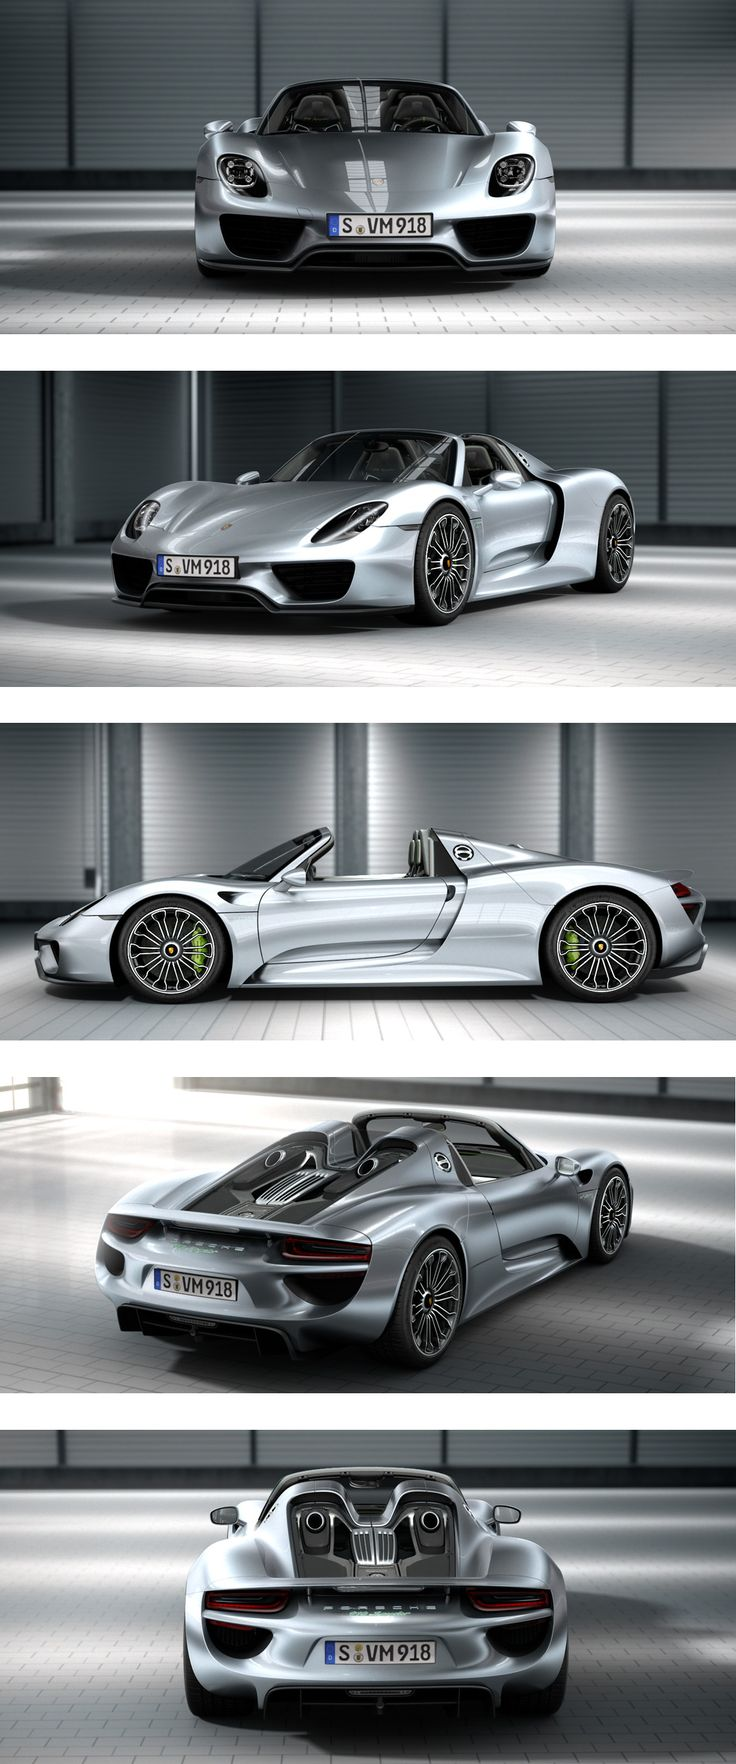 Wow! The 10 Most Expensive Cars In The World For 2014! Check out #Porsche 918 Spyder